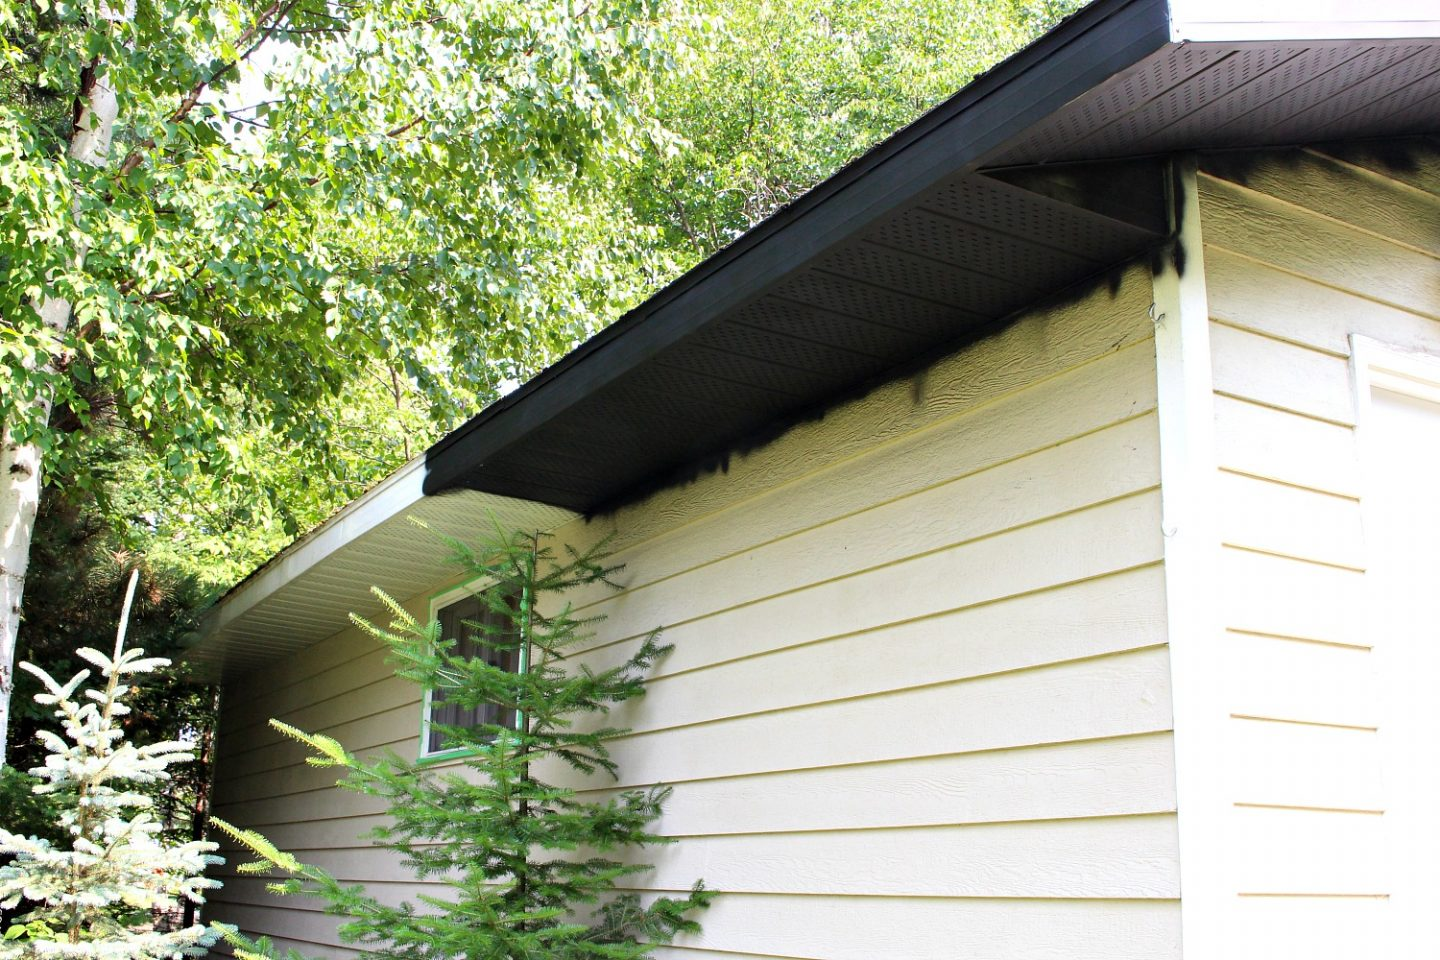 DIY painted soffit and fascia